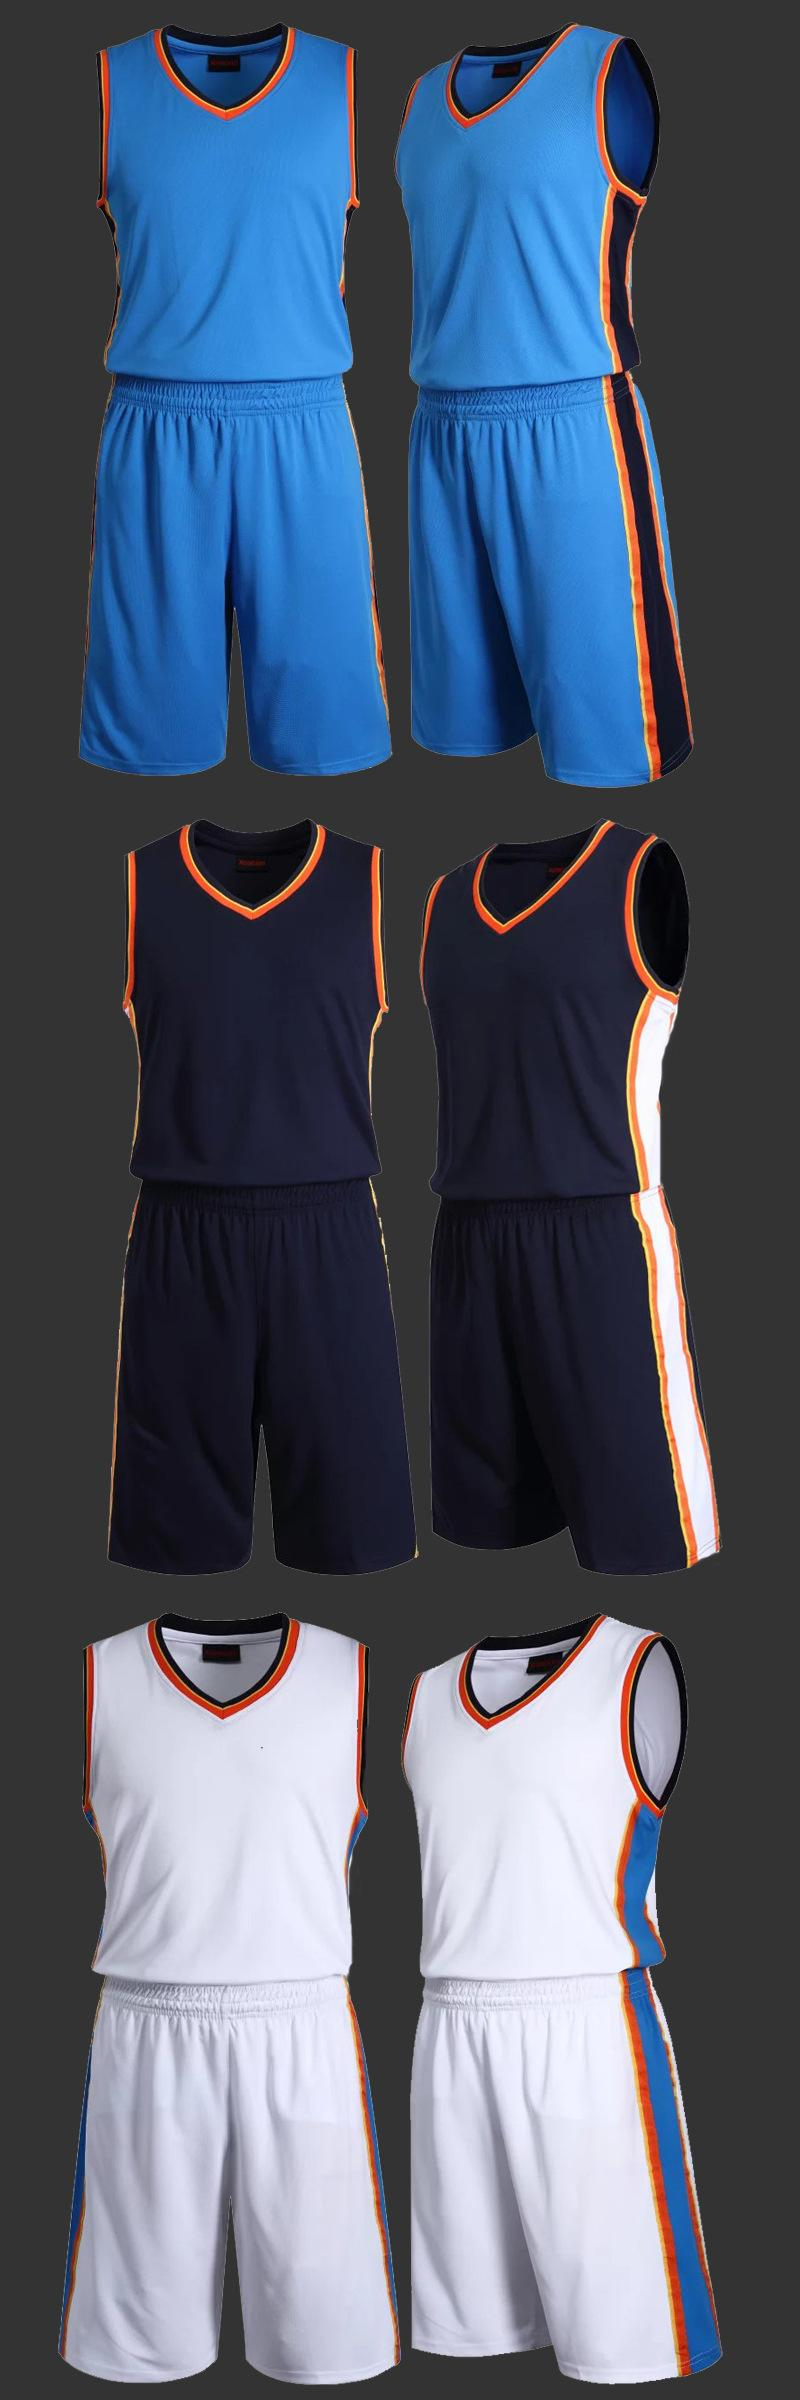 06ac063542f9  Visit to Buy  Mens Blank Basketball Jersey Adults Sports Shirt and Shorts  Set Team Uniform Training Running Breathable Clothes Plus Size   Advertisement